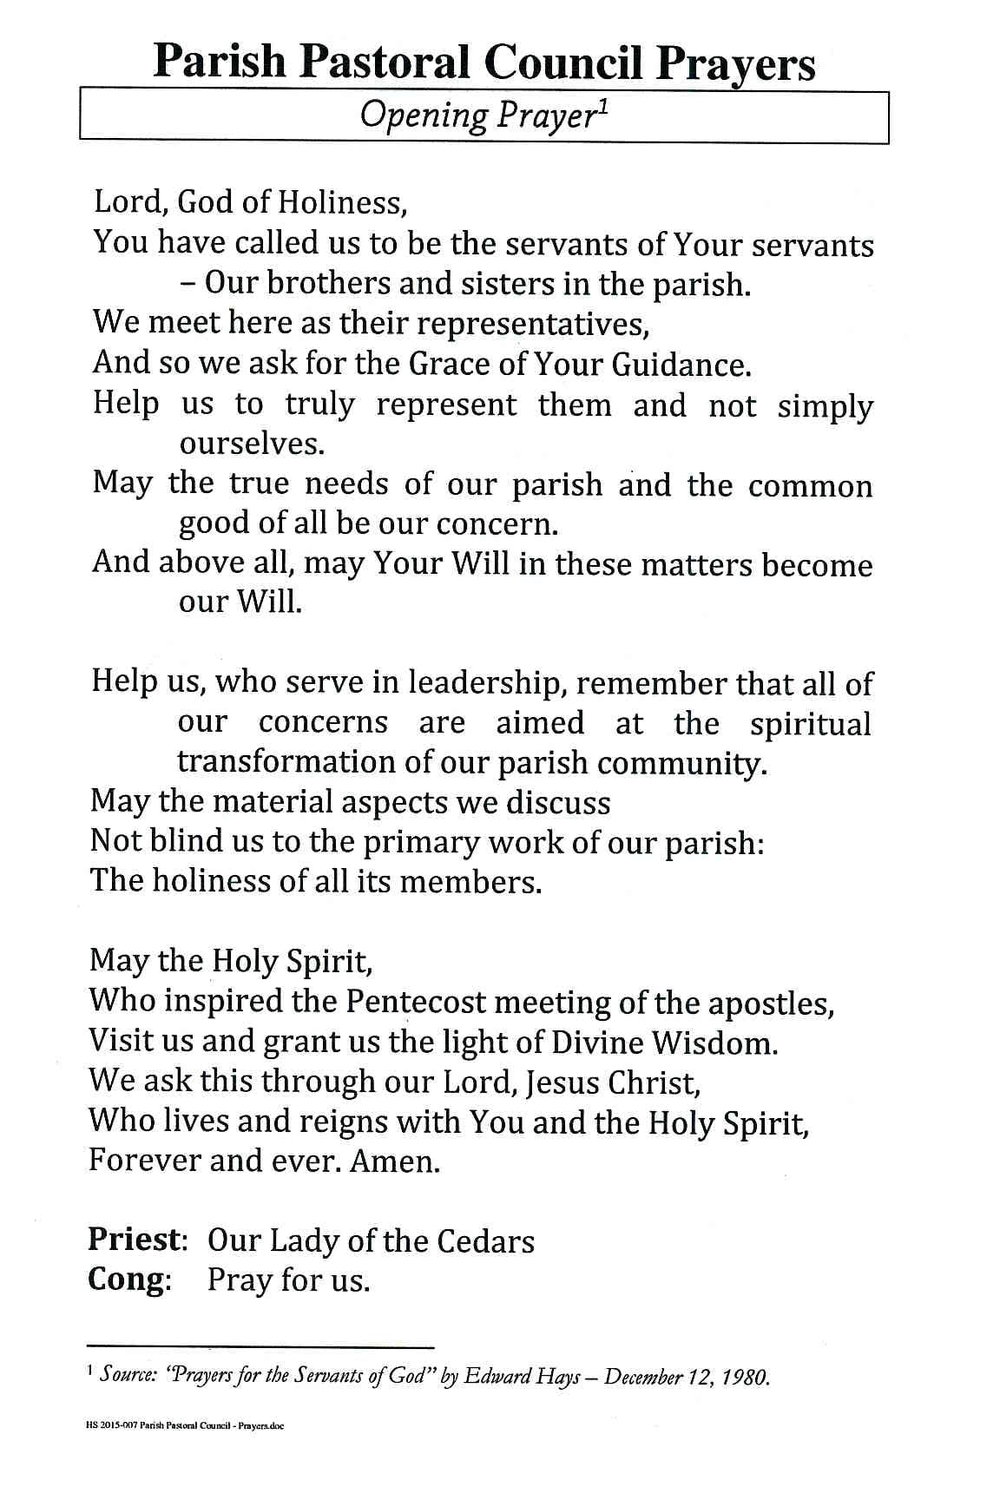 Parish Council Prayers 2015-1.jpg